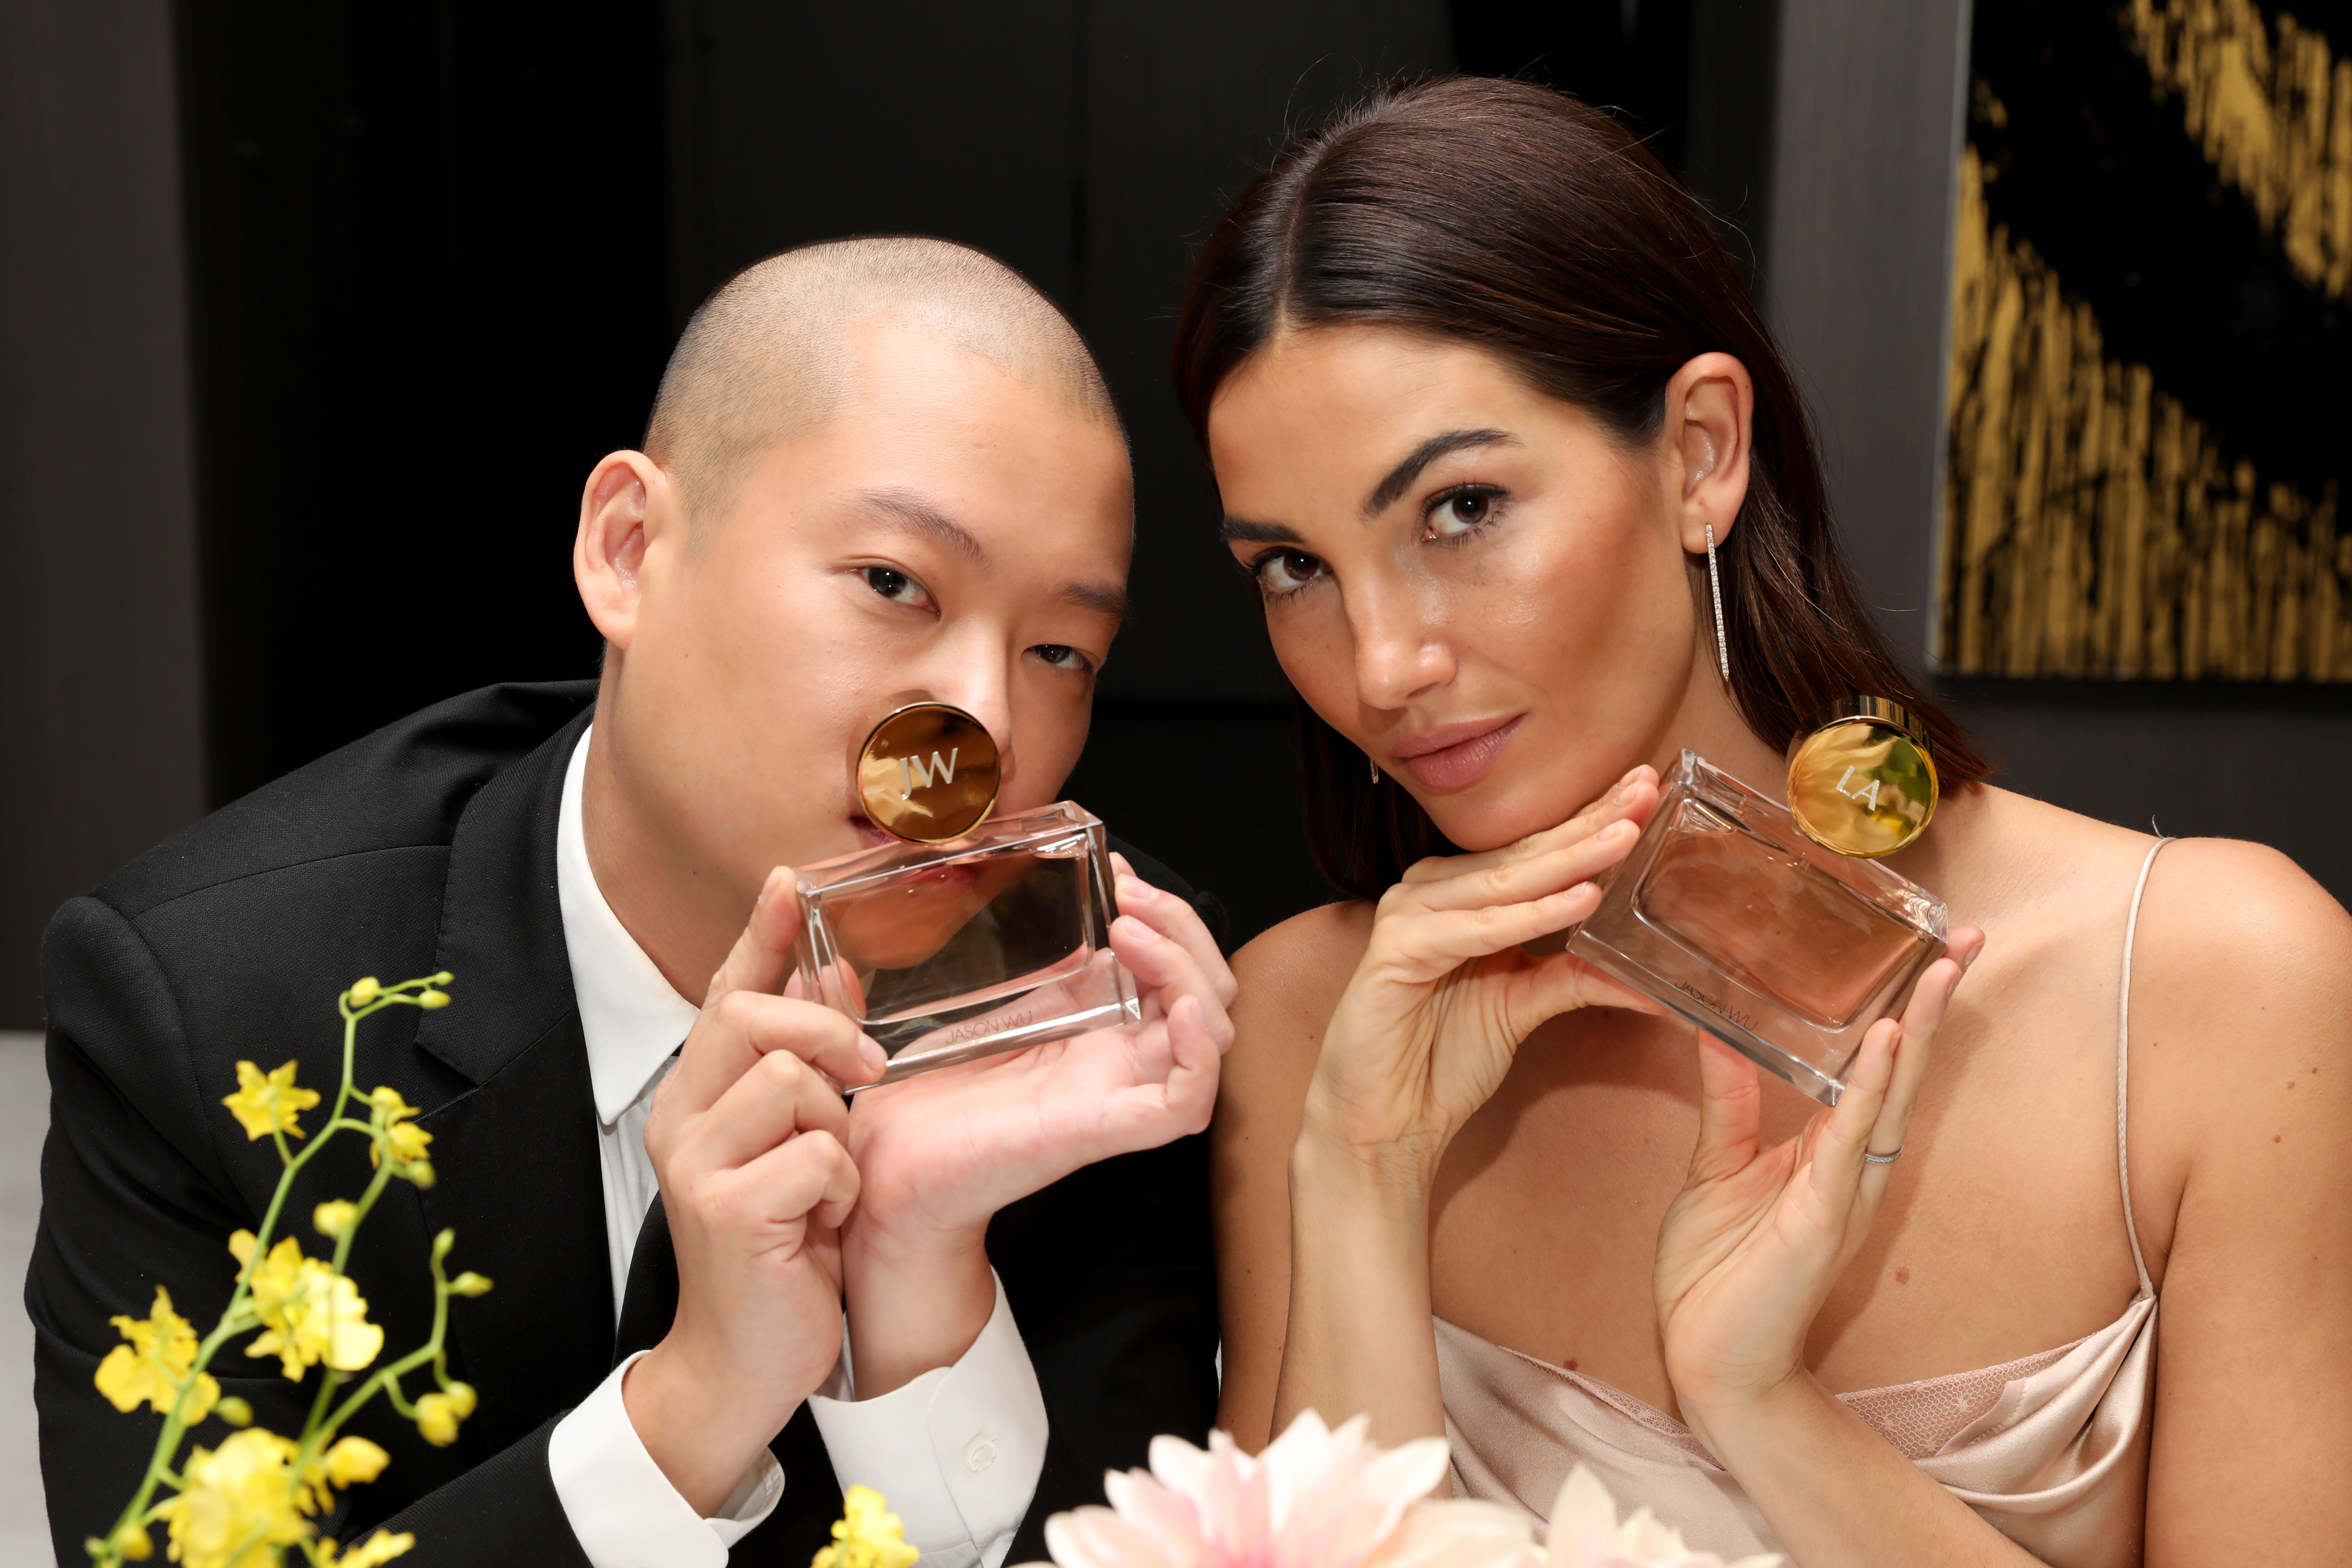 Jason Wu and Lily AldridgeJason Wu Fragrance Dinner, Spring Summer 2018, New York Fashion Week, USA - 08 Sep 2017